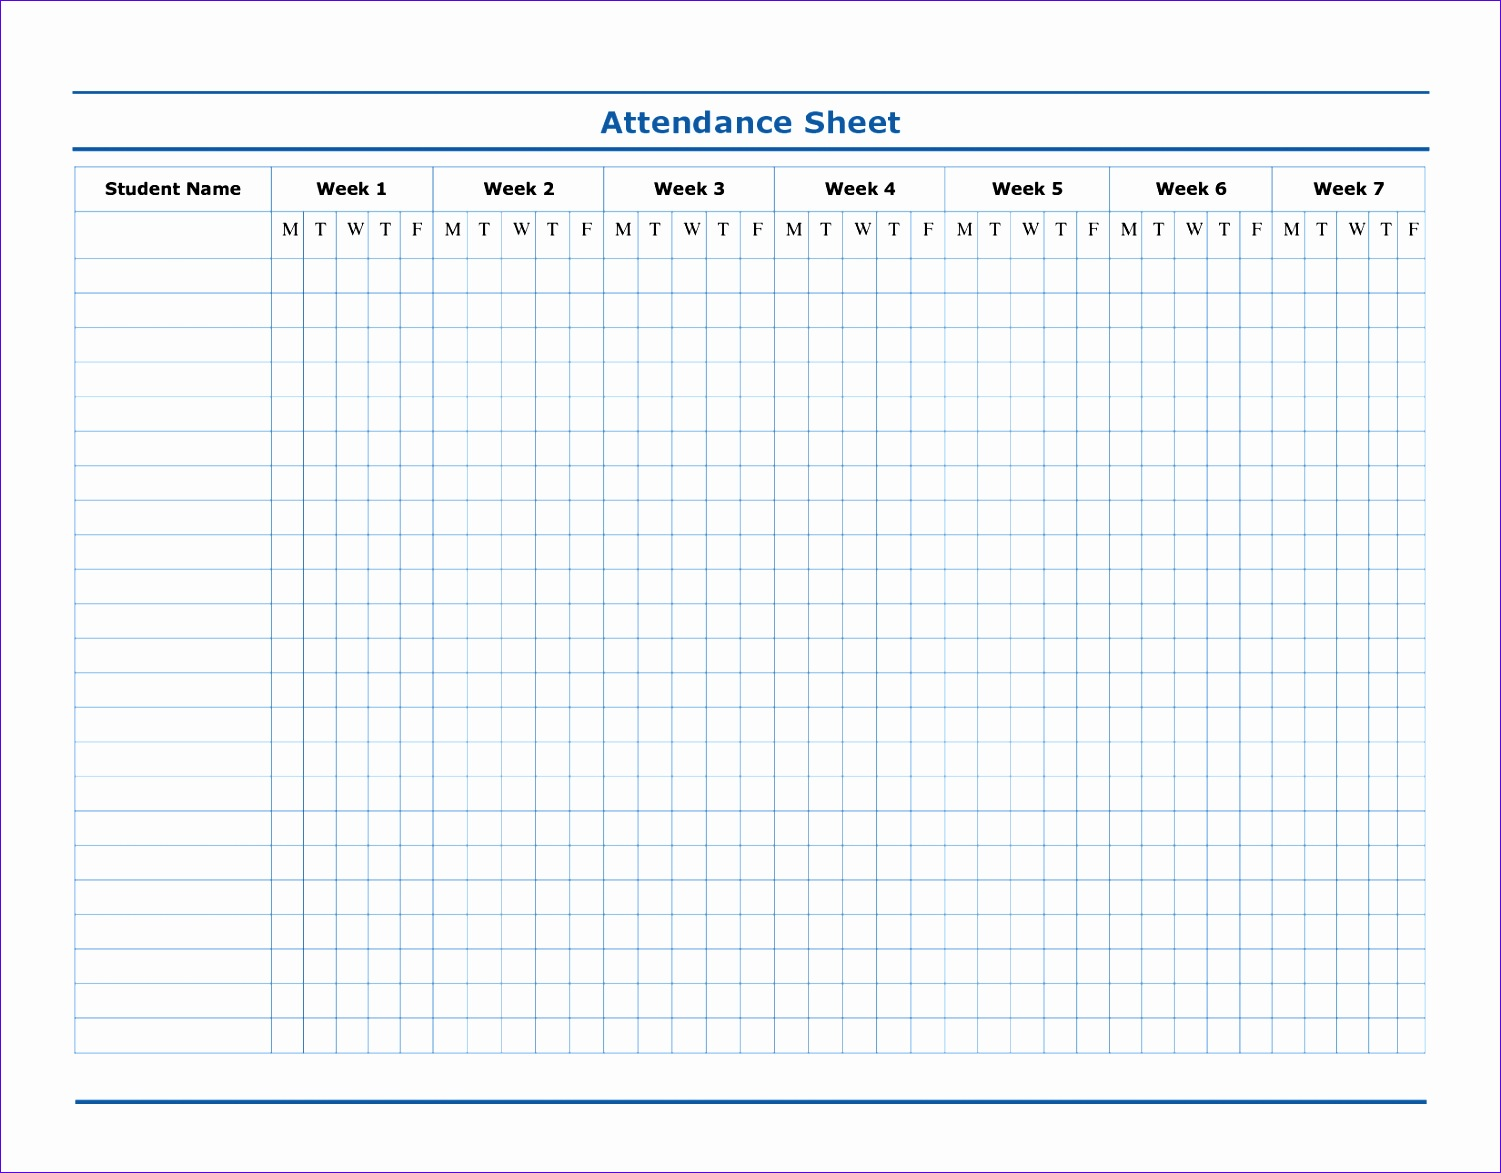 12 Attendance Roster Template Excel